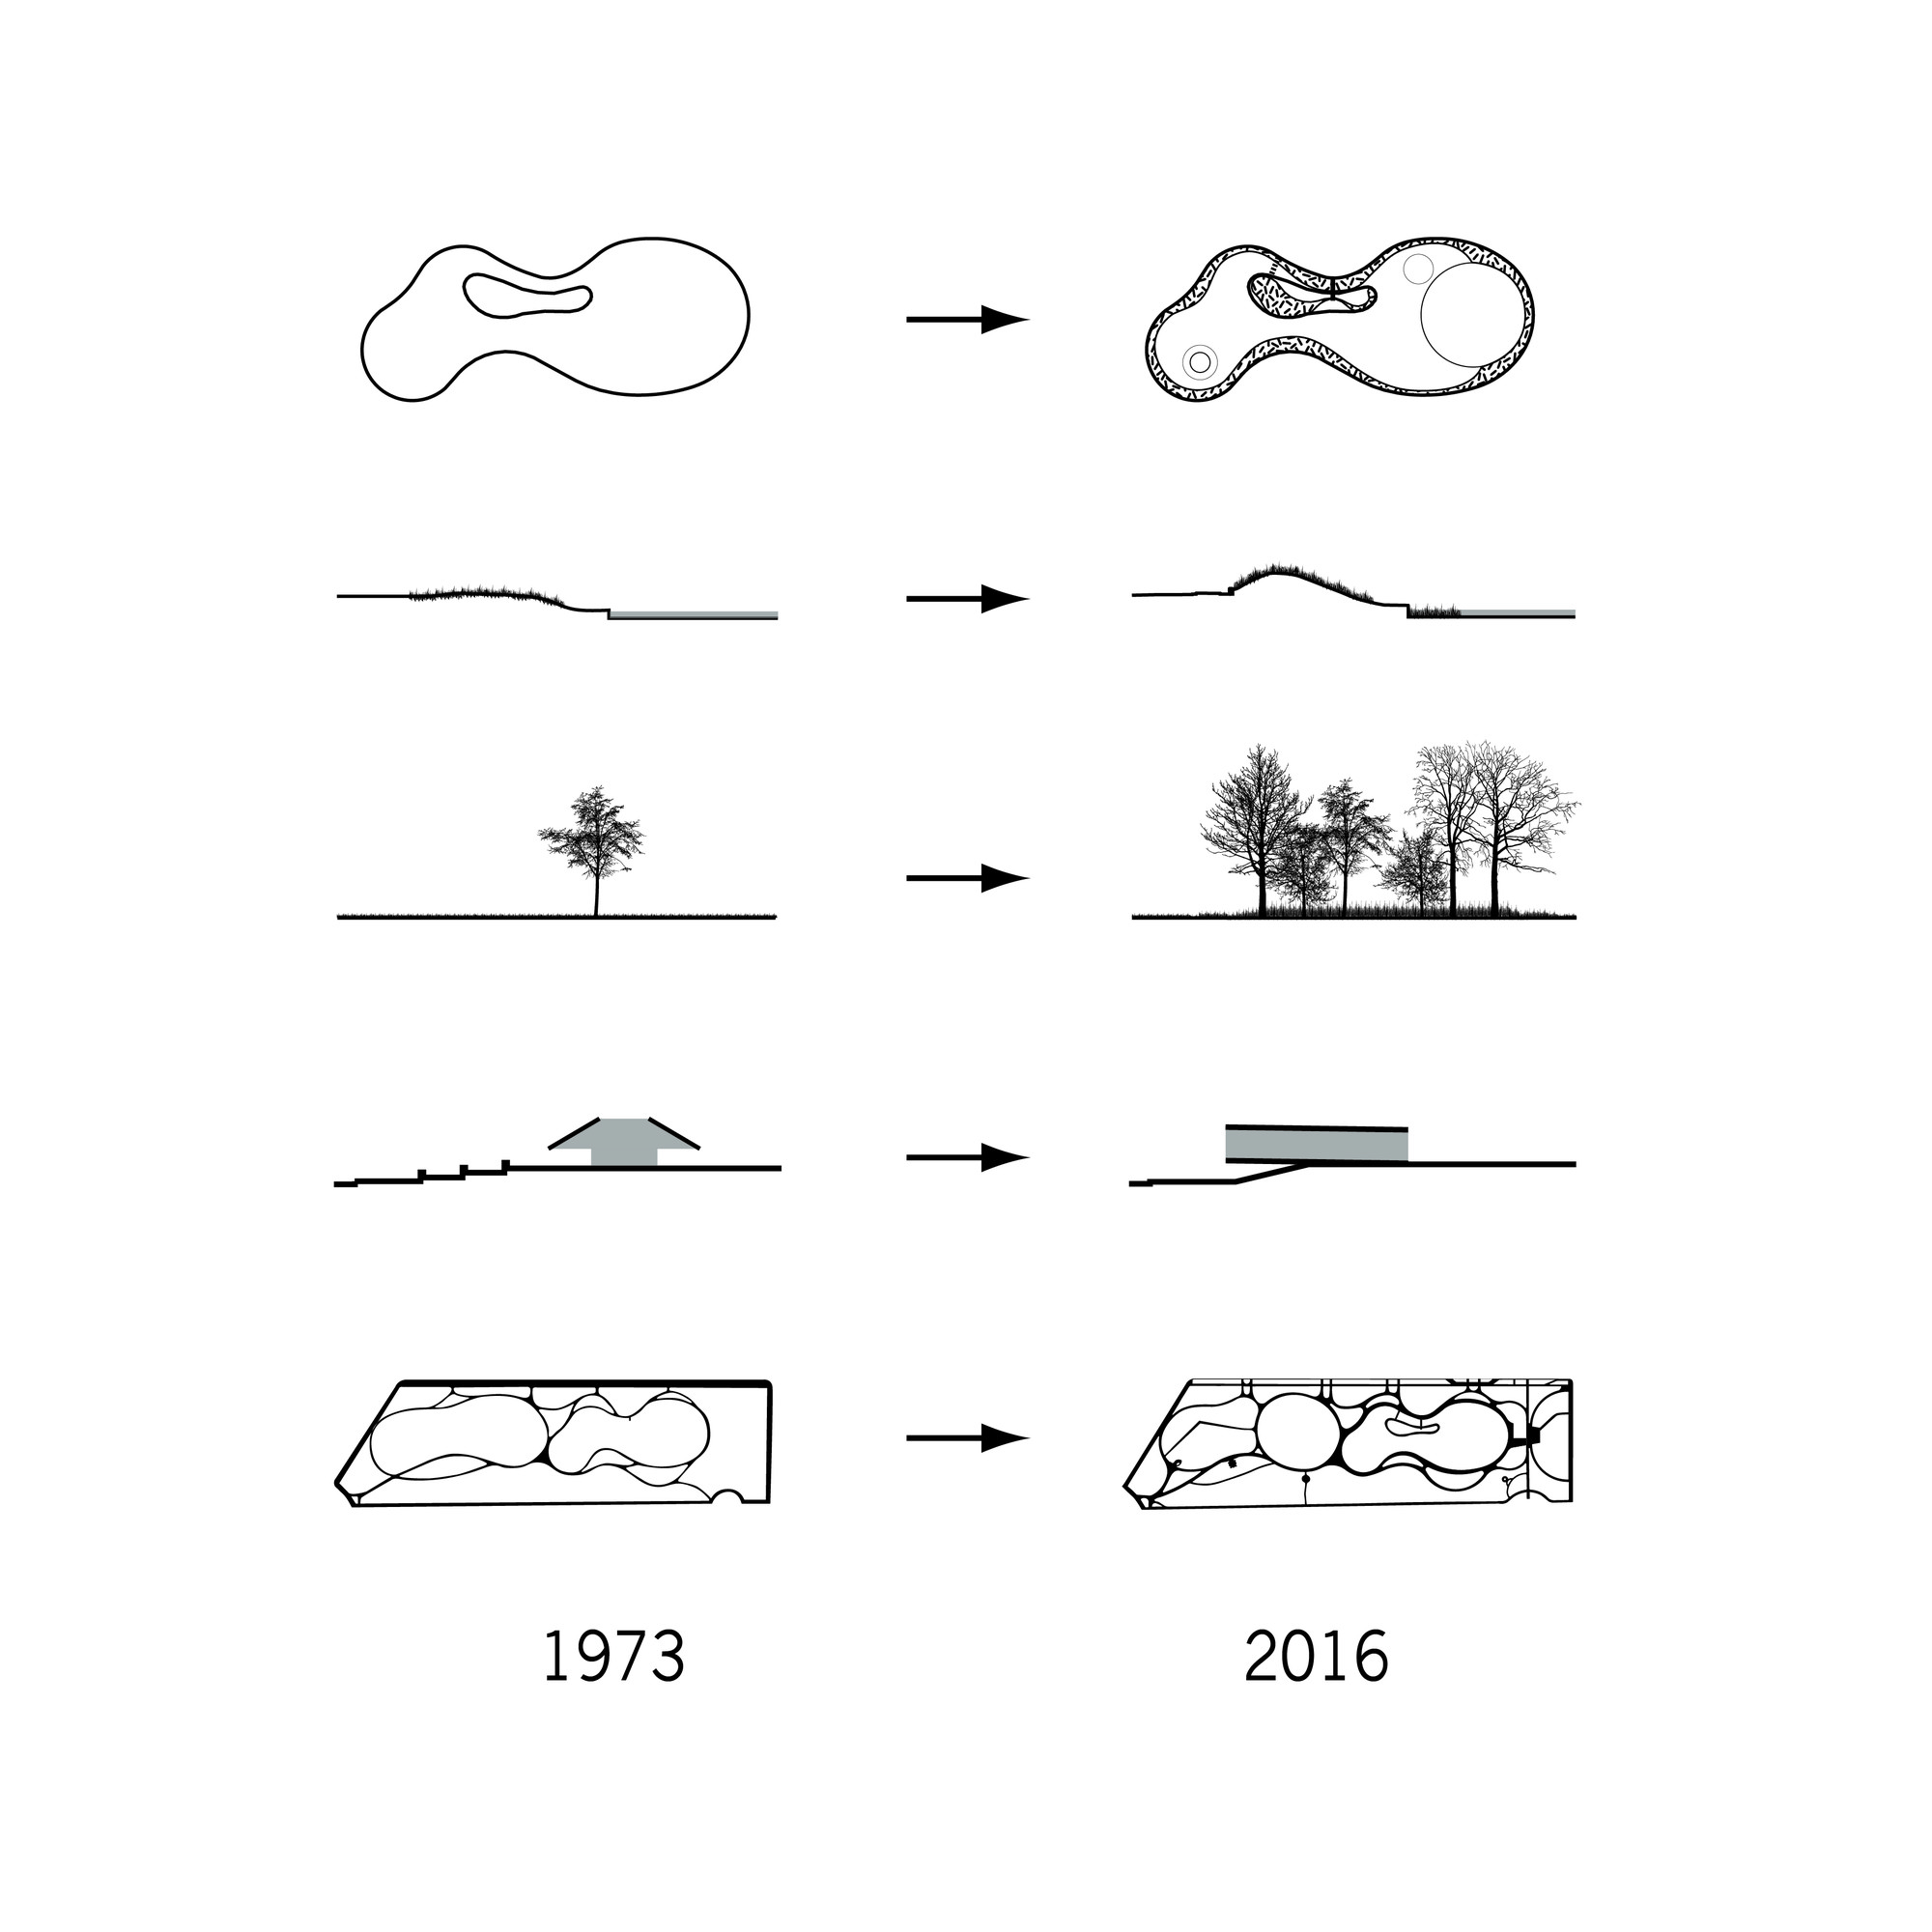 small resolution of rogers partners and pwp s constitution gardens redesign approved for national mall concept diagram image pwp landscape architecture